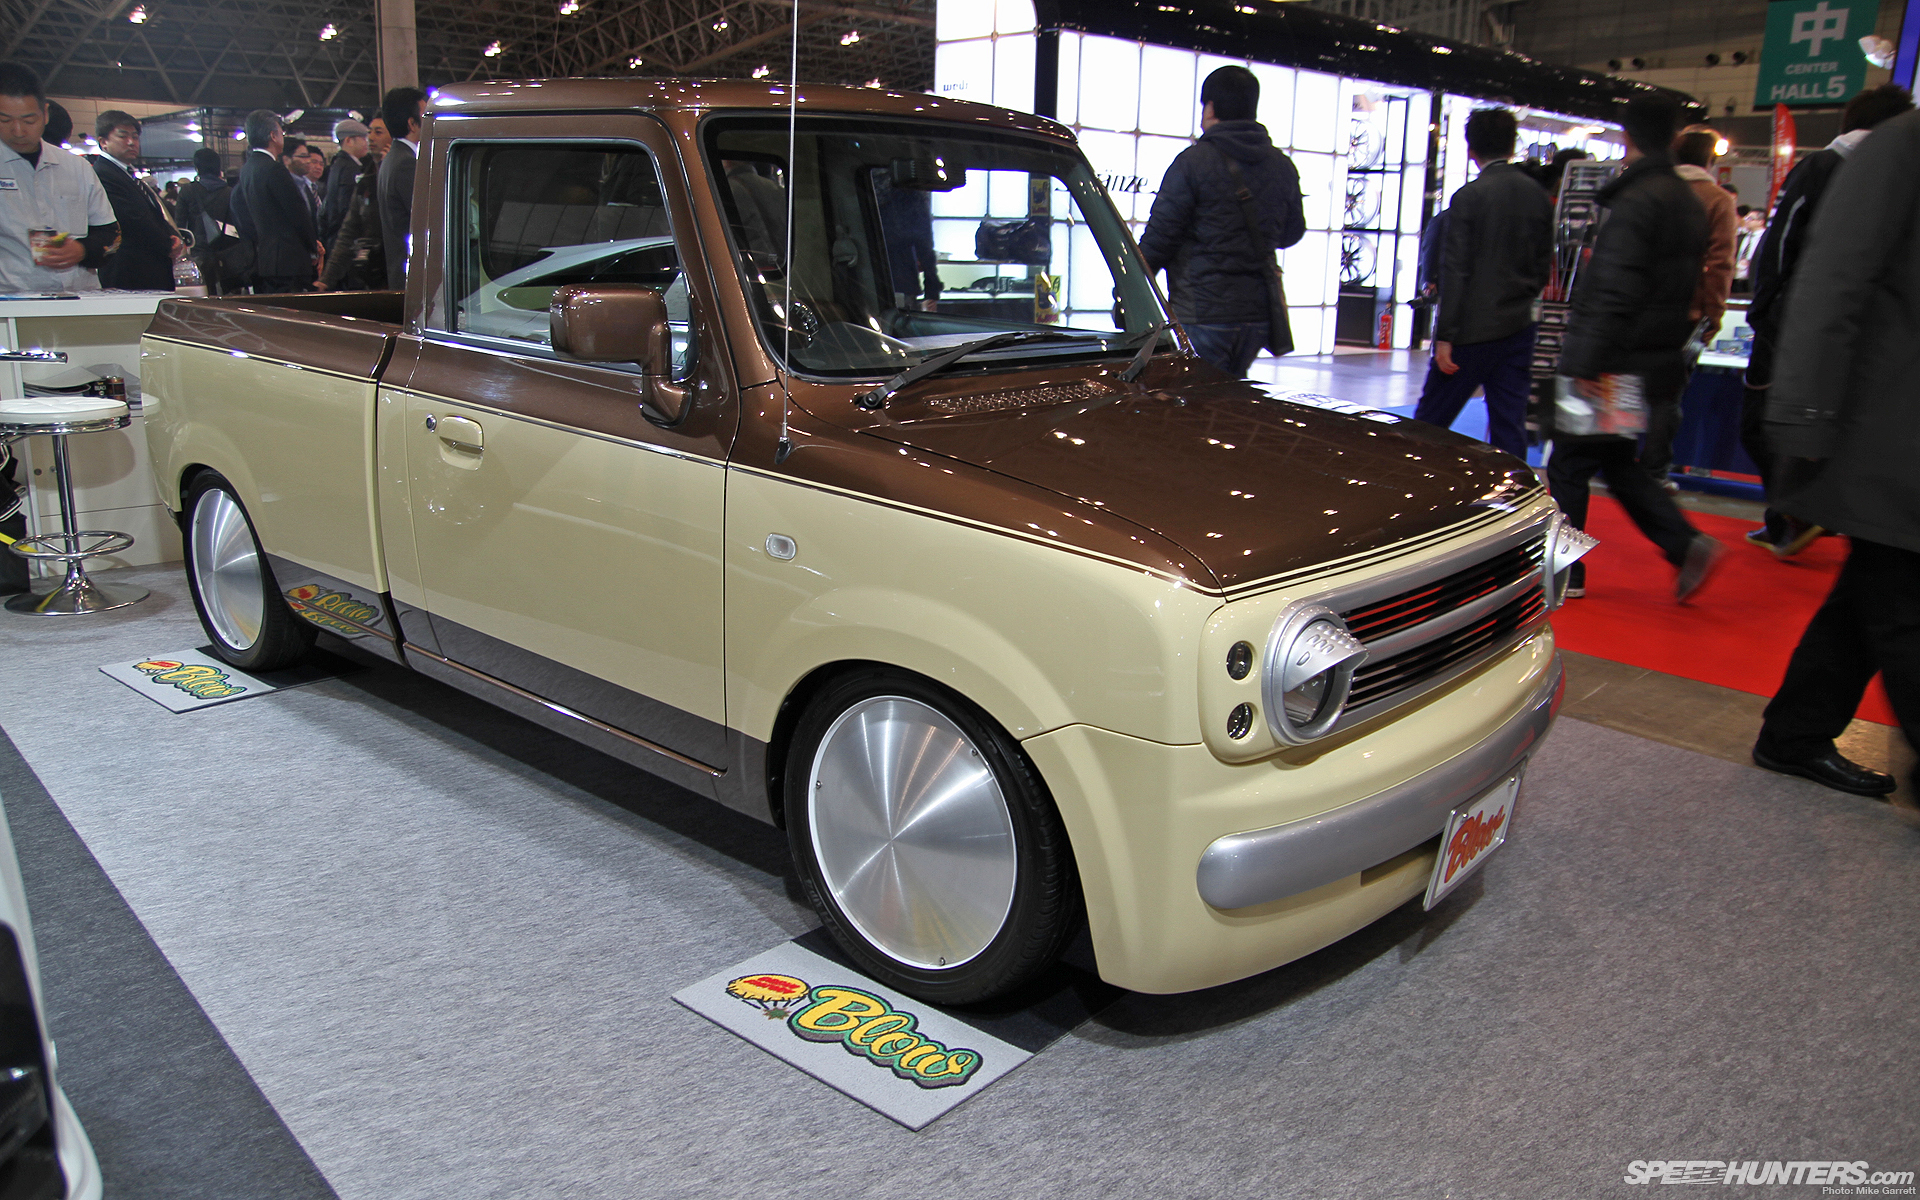 Interesting... what is is? Honda N-one truck??? Nissan Cube truck?